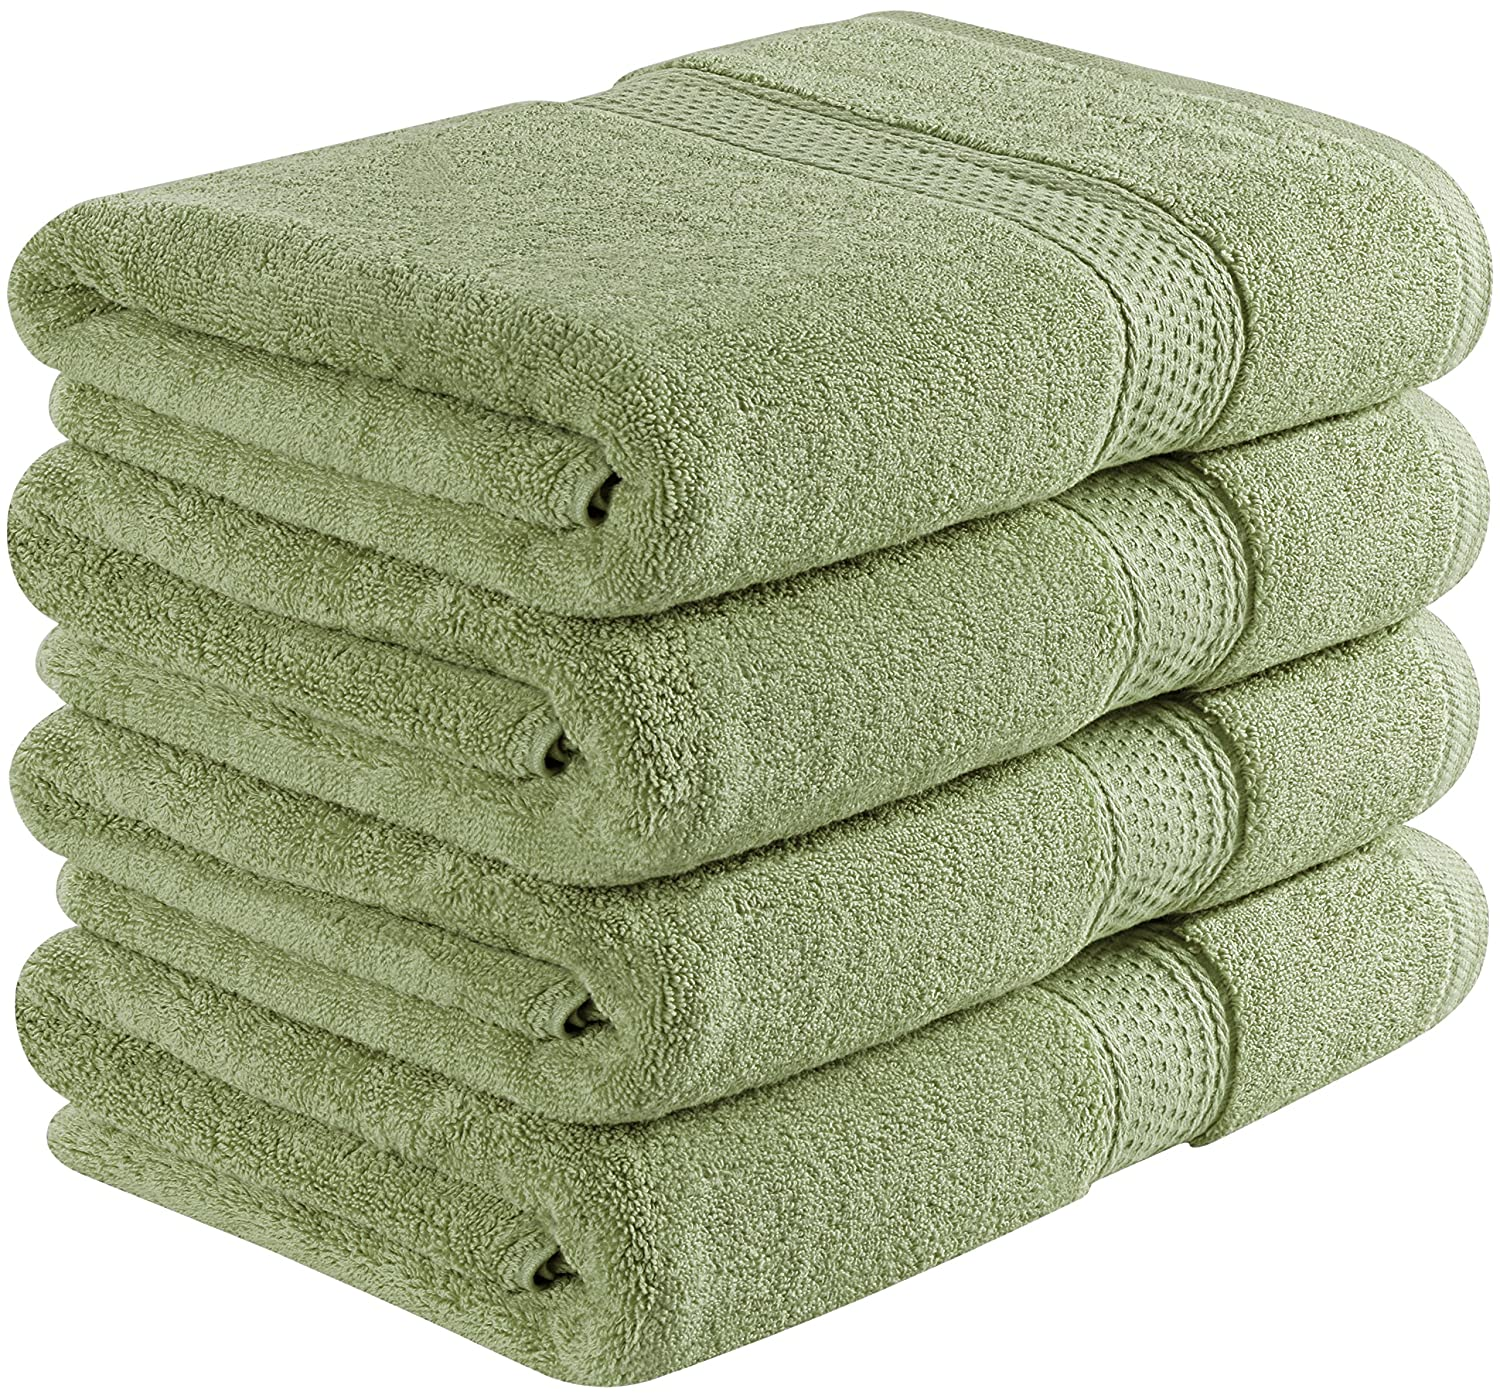 Utopia Towels 700 GSM Cotton 27-Inch-by-54-Inch Bath Towel Set, Set of 4, Beige UT0449